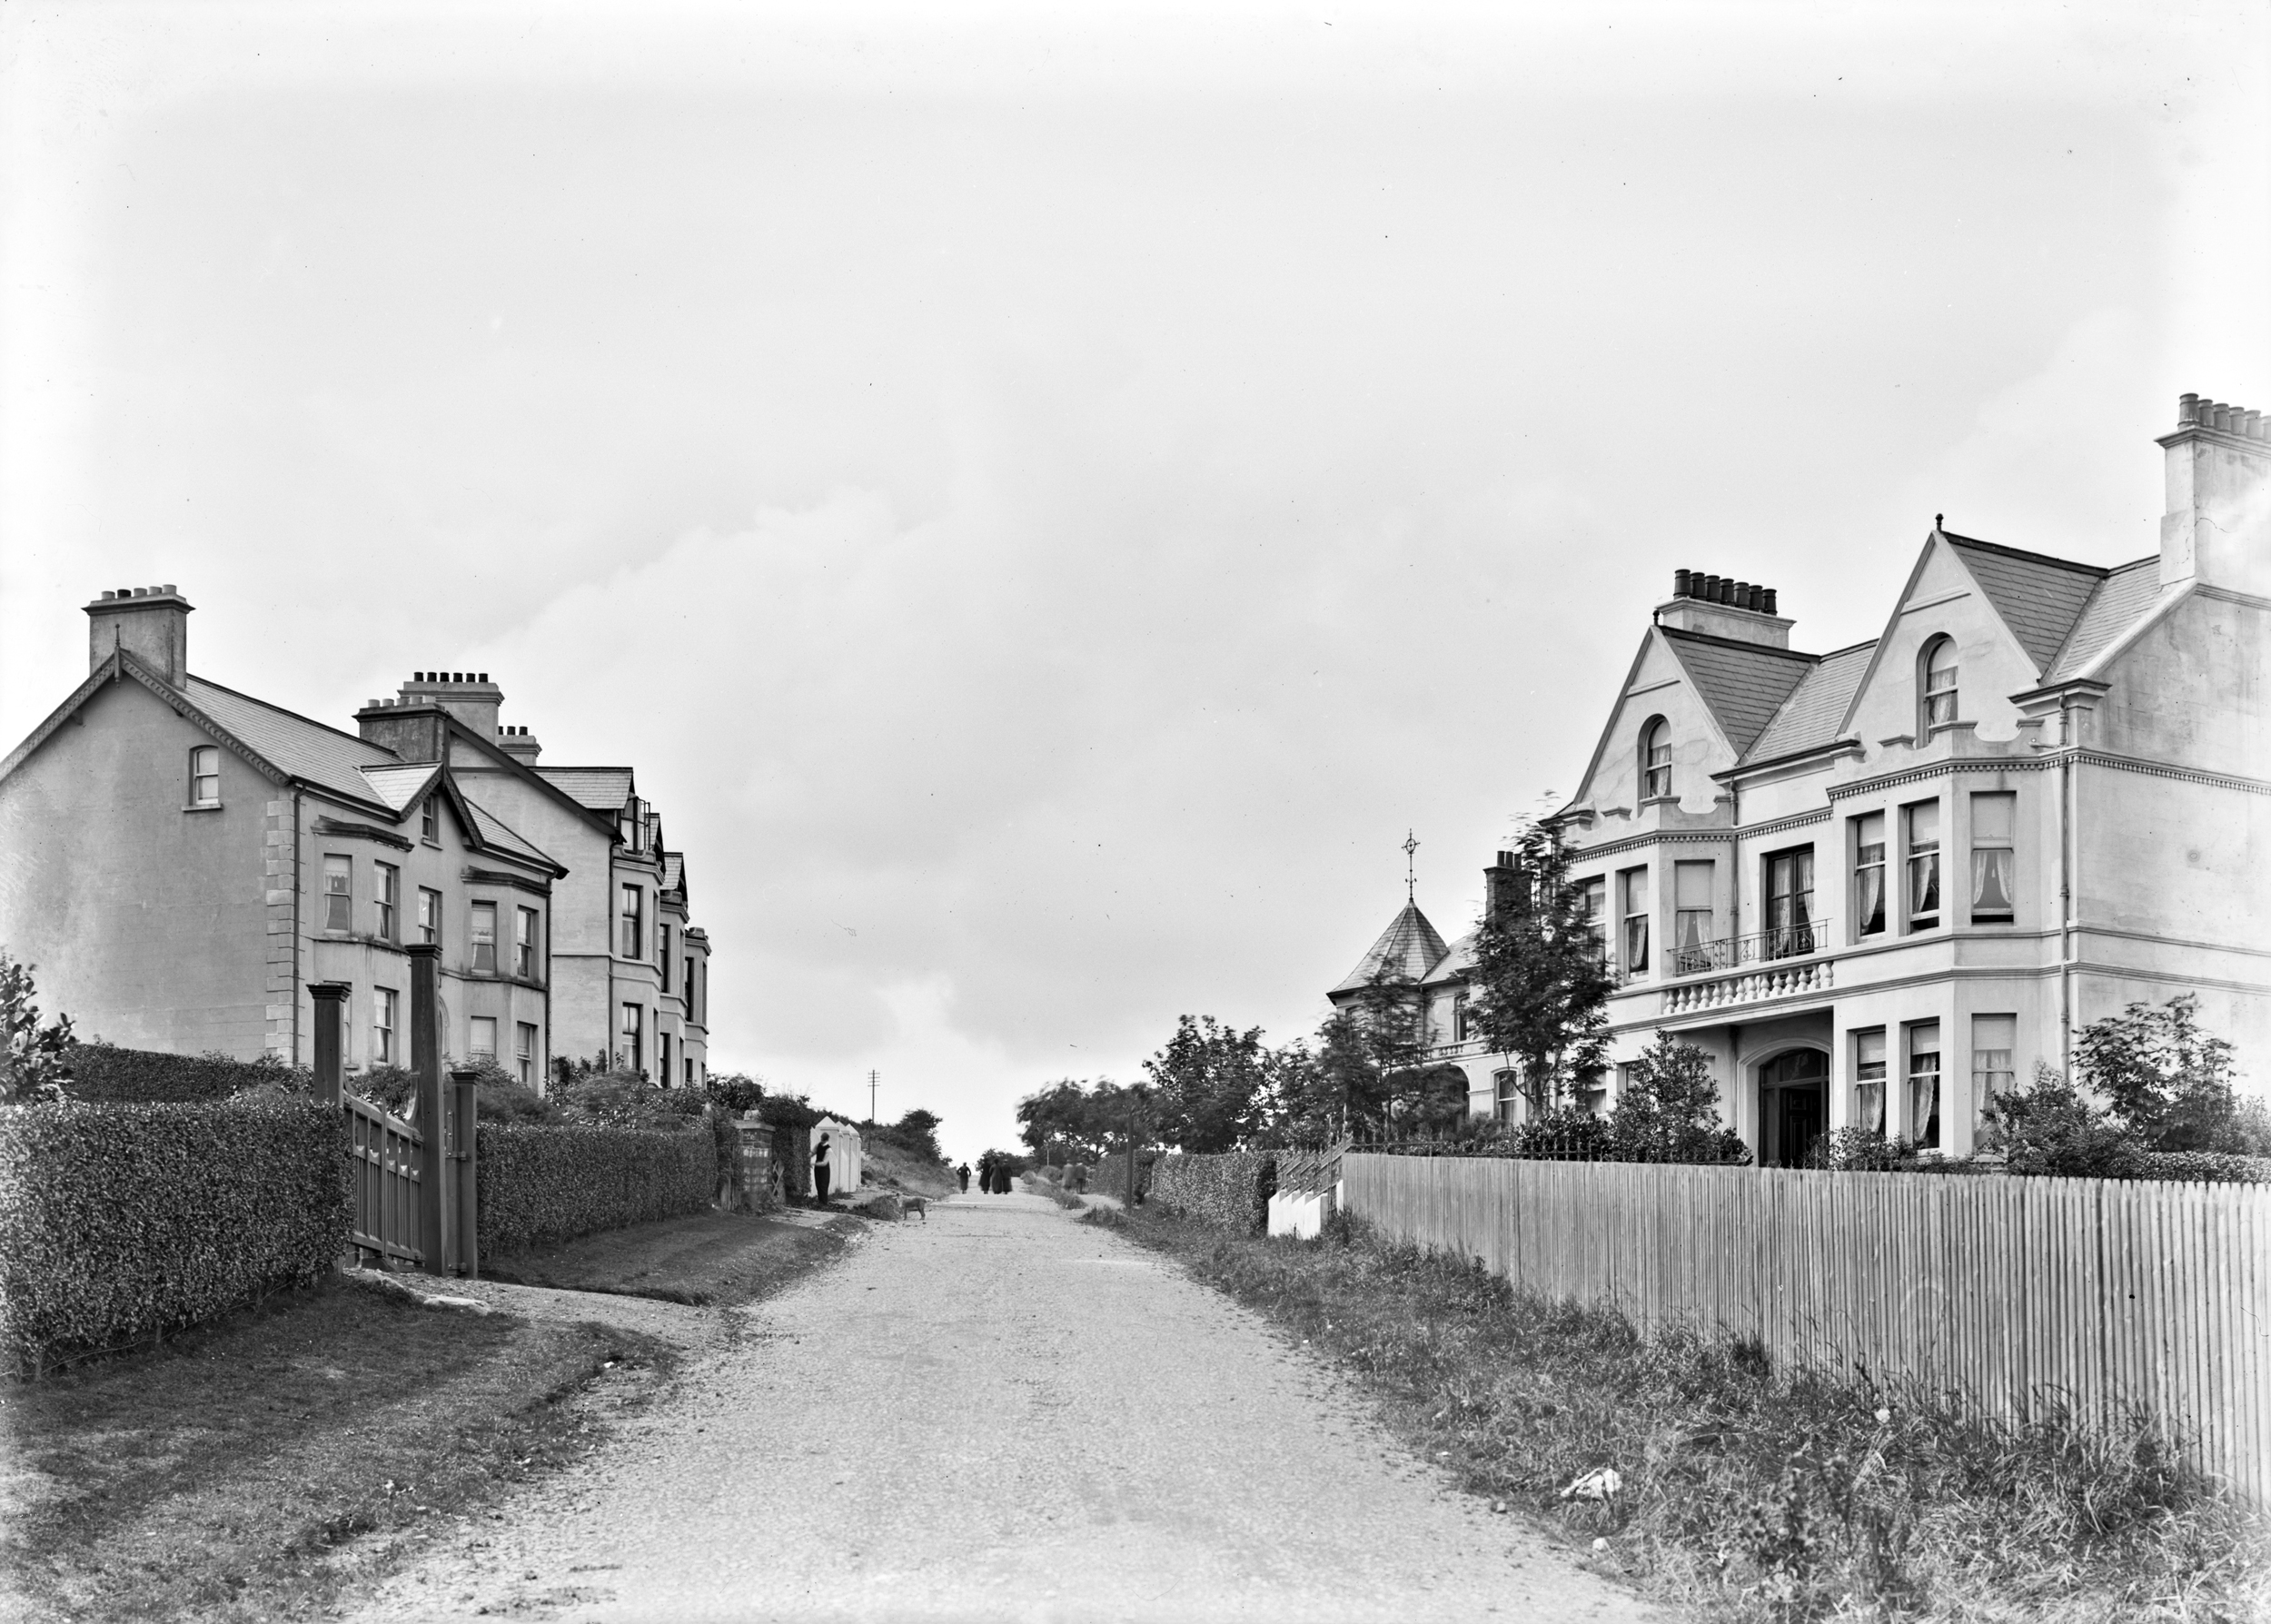 POW Avenue in Belfast, complete with resident canine?